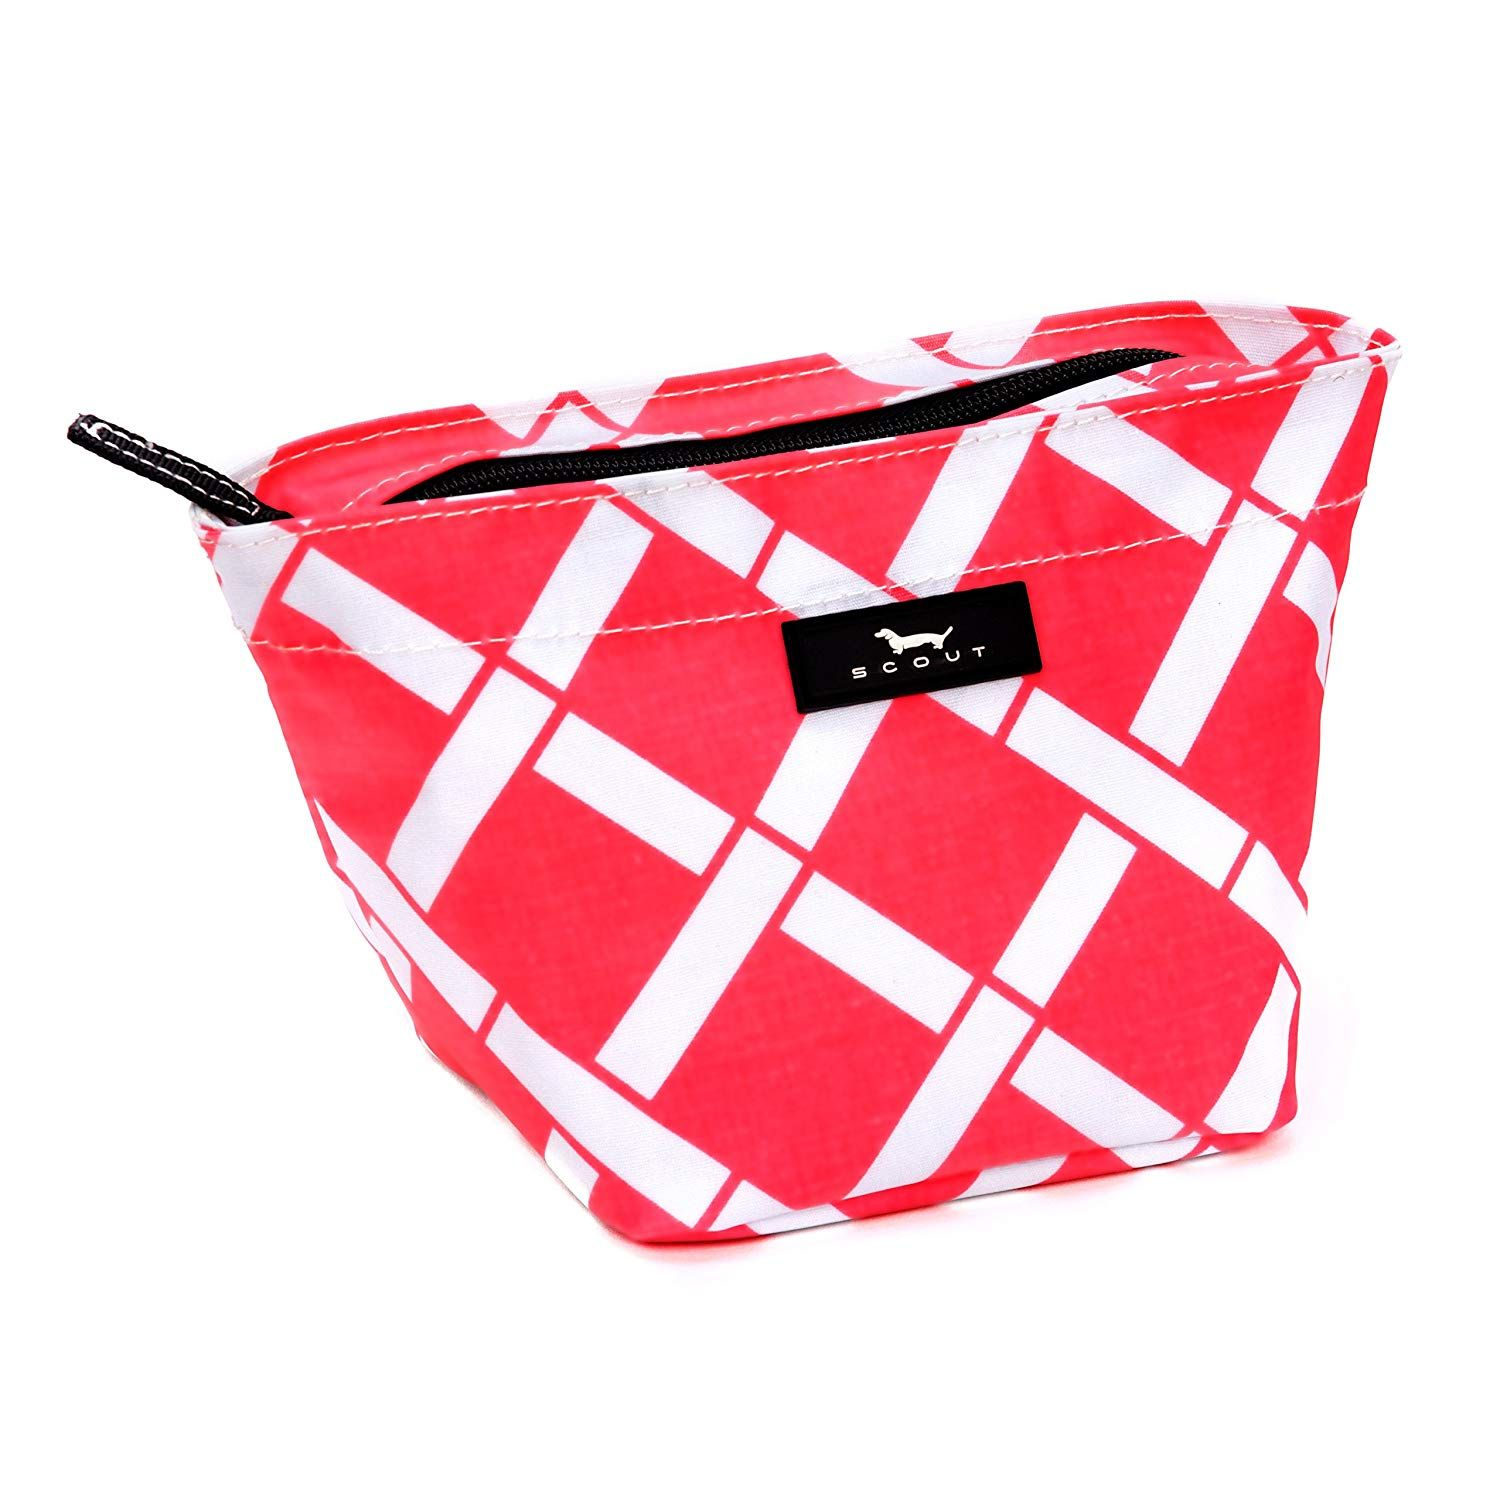 SCOUT Crown Jewels Cosmetic Bag, 81/4 by 41/2 by 41/2